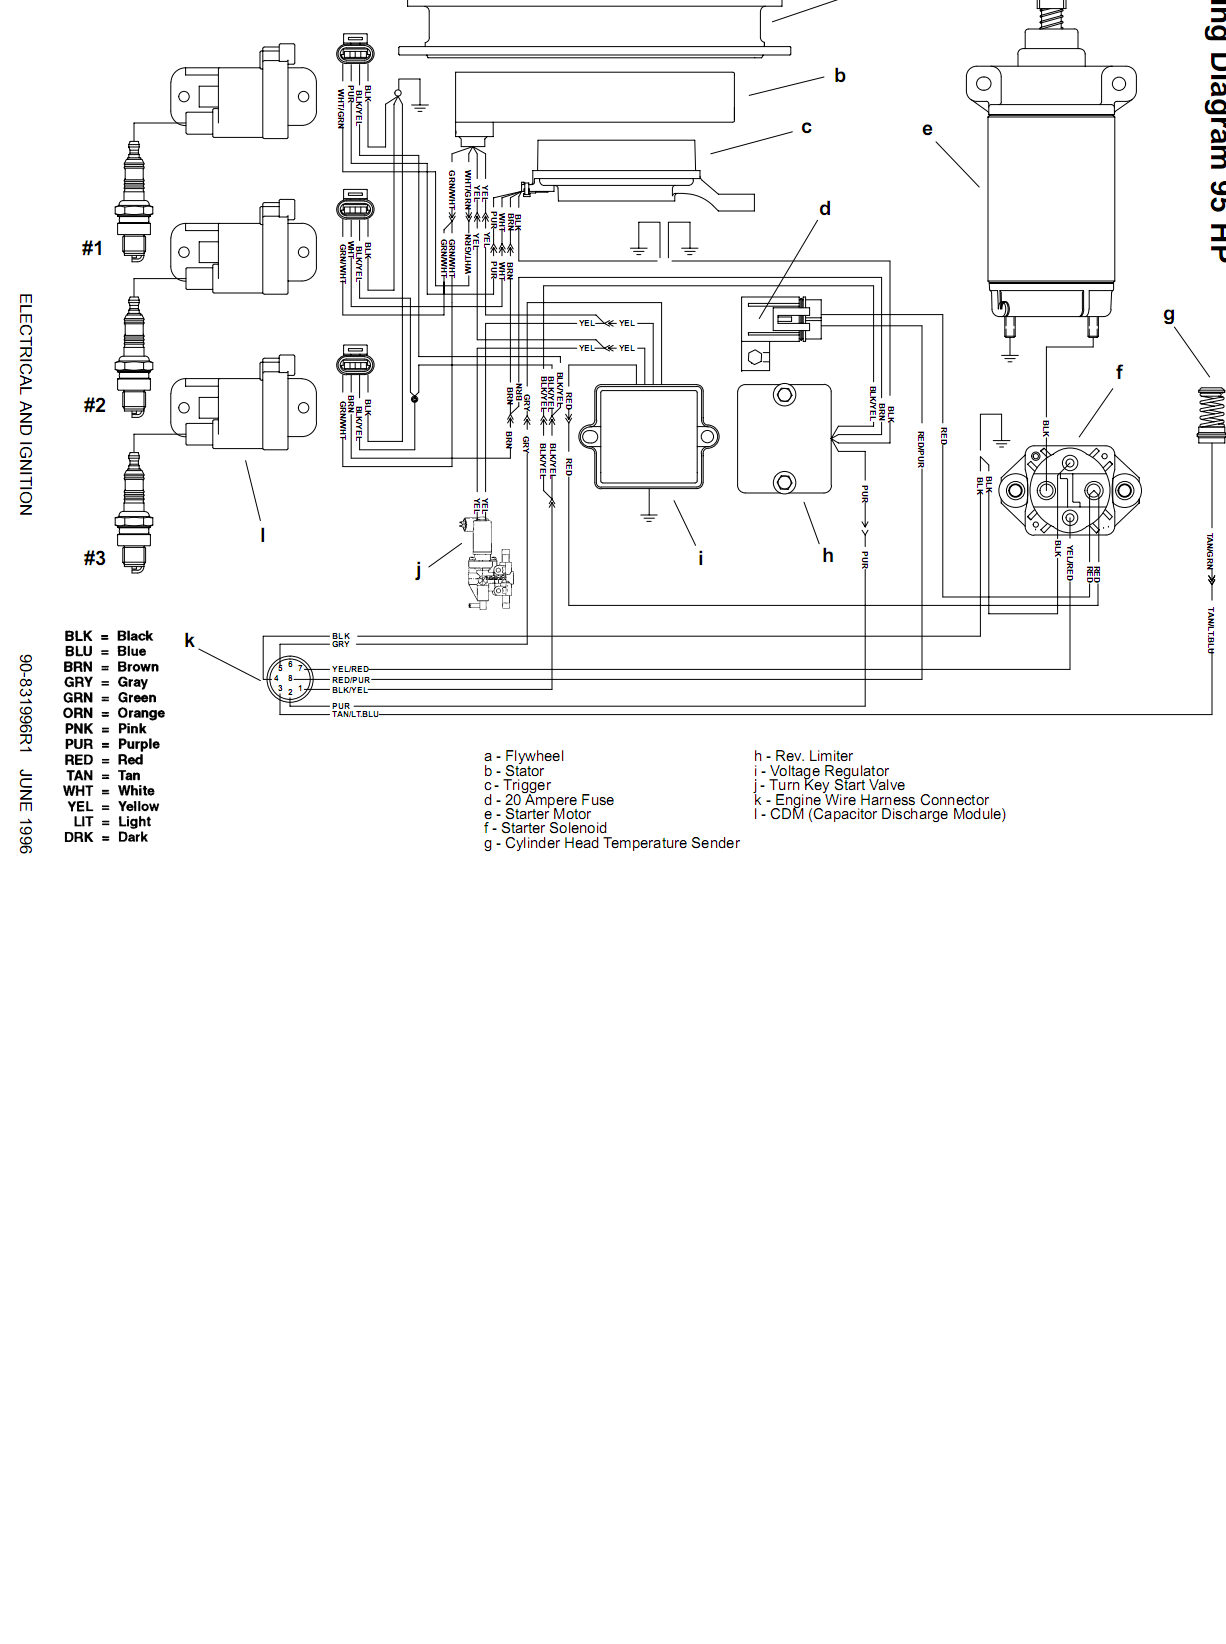 2004 Searay Sunsport Wiring Diagram